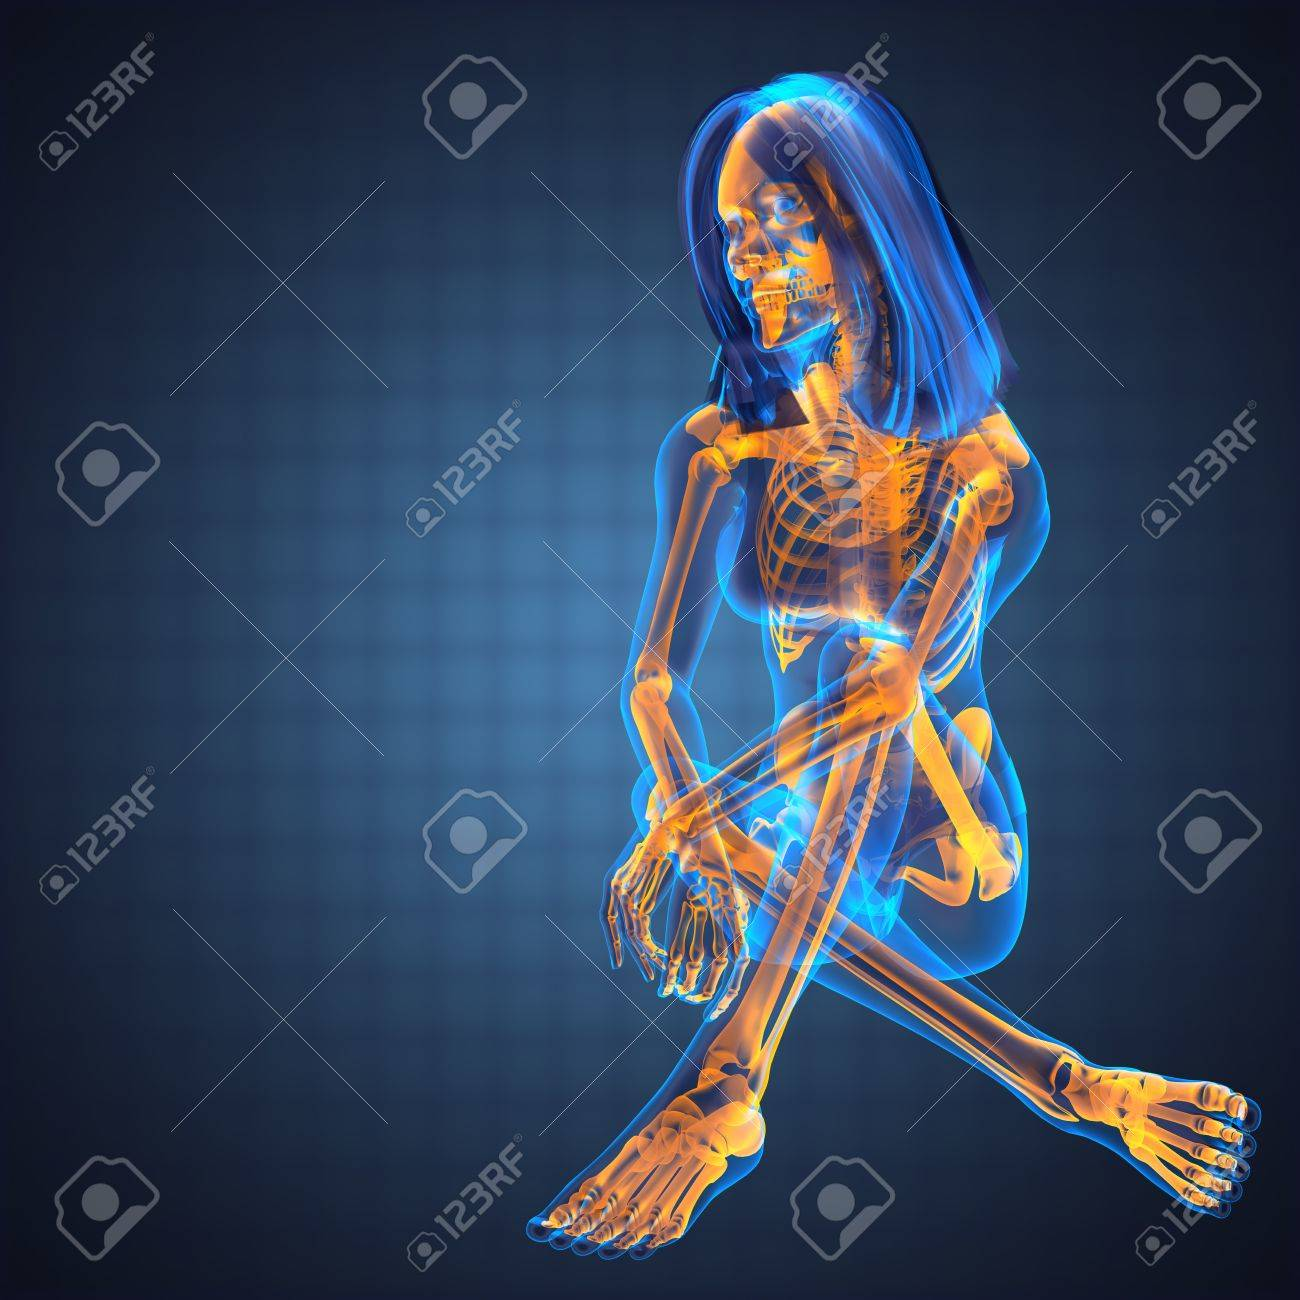 cute woman radiography made in 3D graphics Stock Photo - 12870836